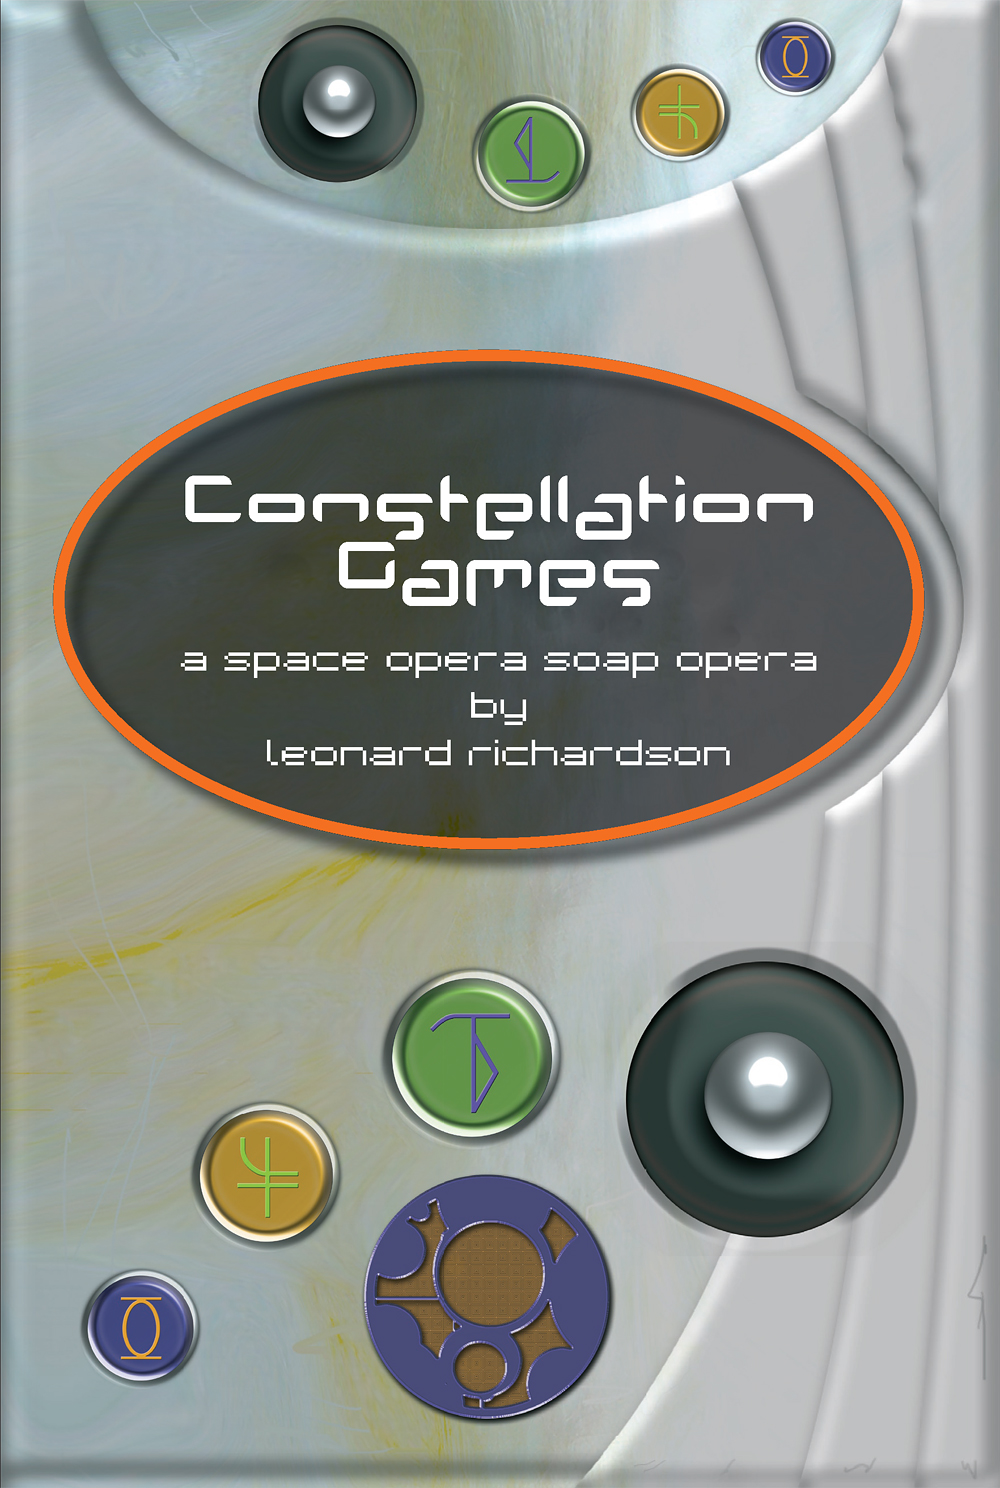 Categories Sumana Reading Super High Grade Circuit Boards Scrap Electronic Corp Alliance Constellation Games By Leonard Richardson